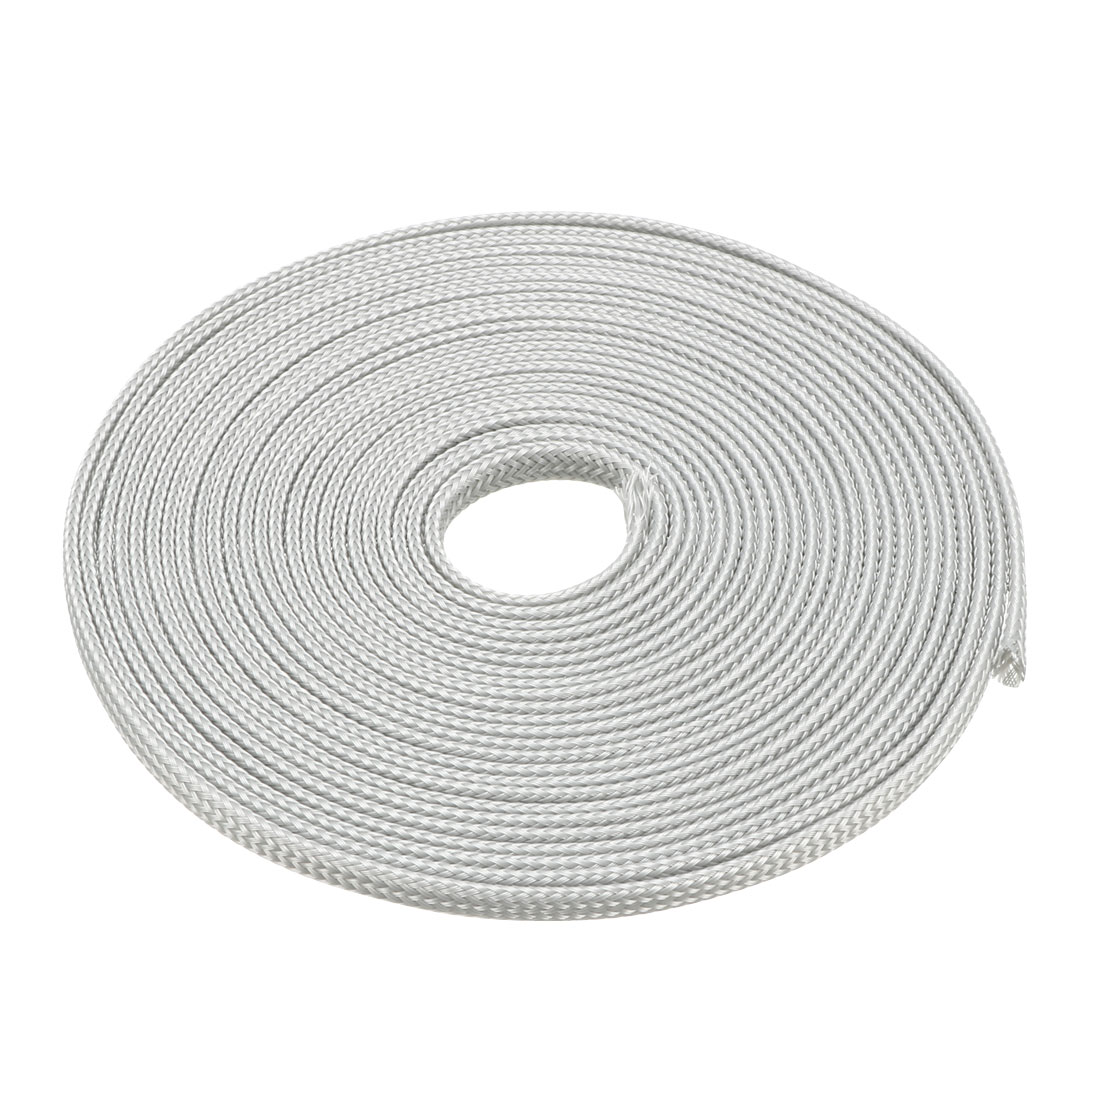 3mm Dia Tight Braided PET Expandable Sleeving Cable Wire Wrap Sheath Gray 5M